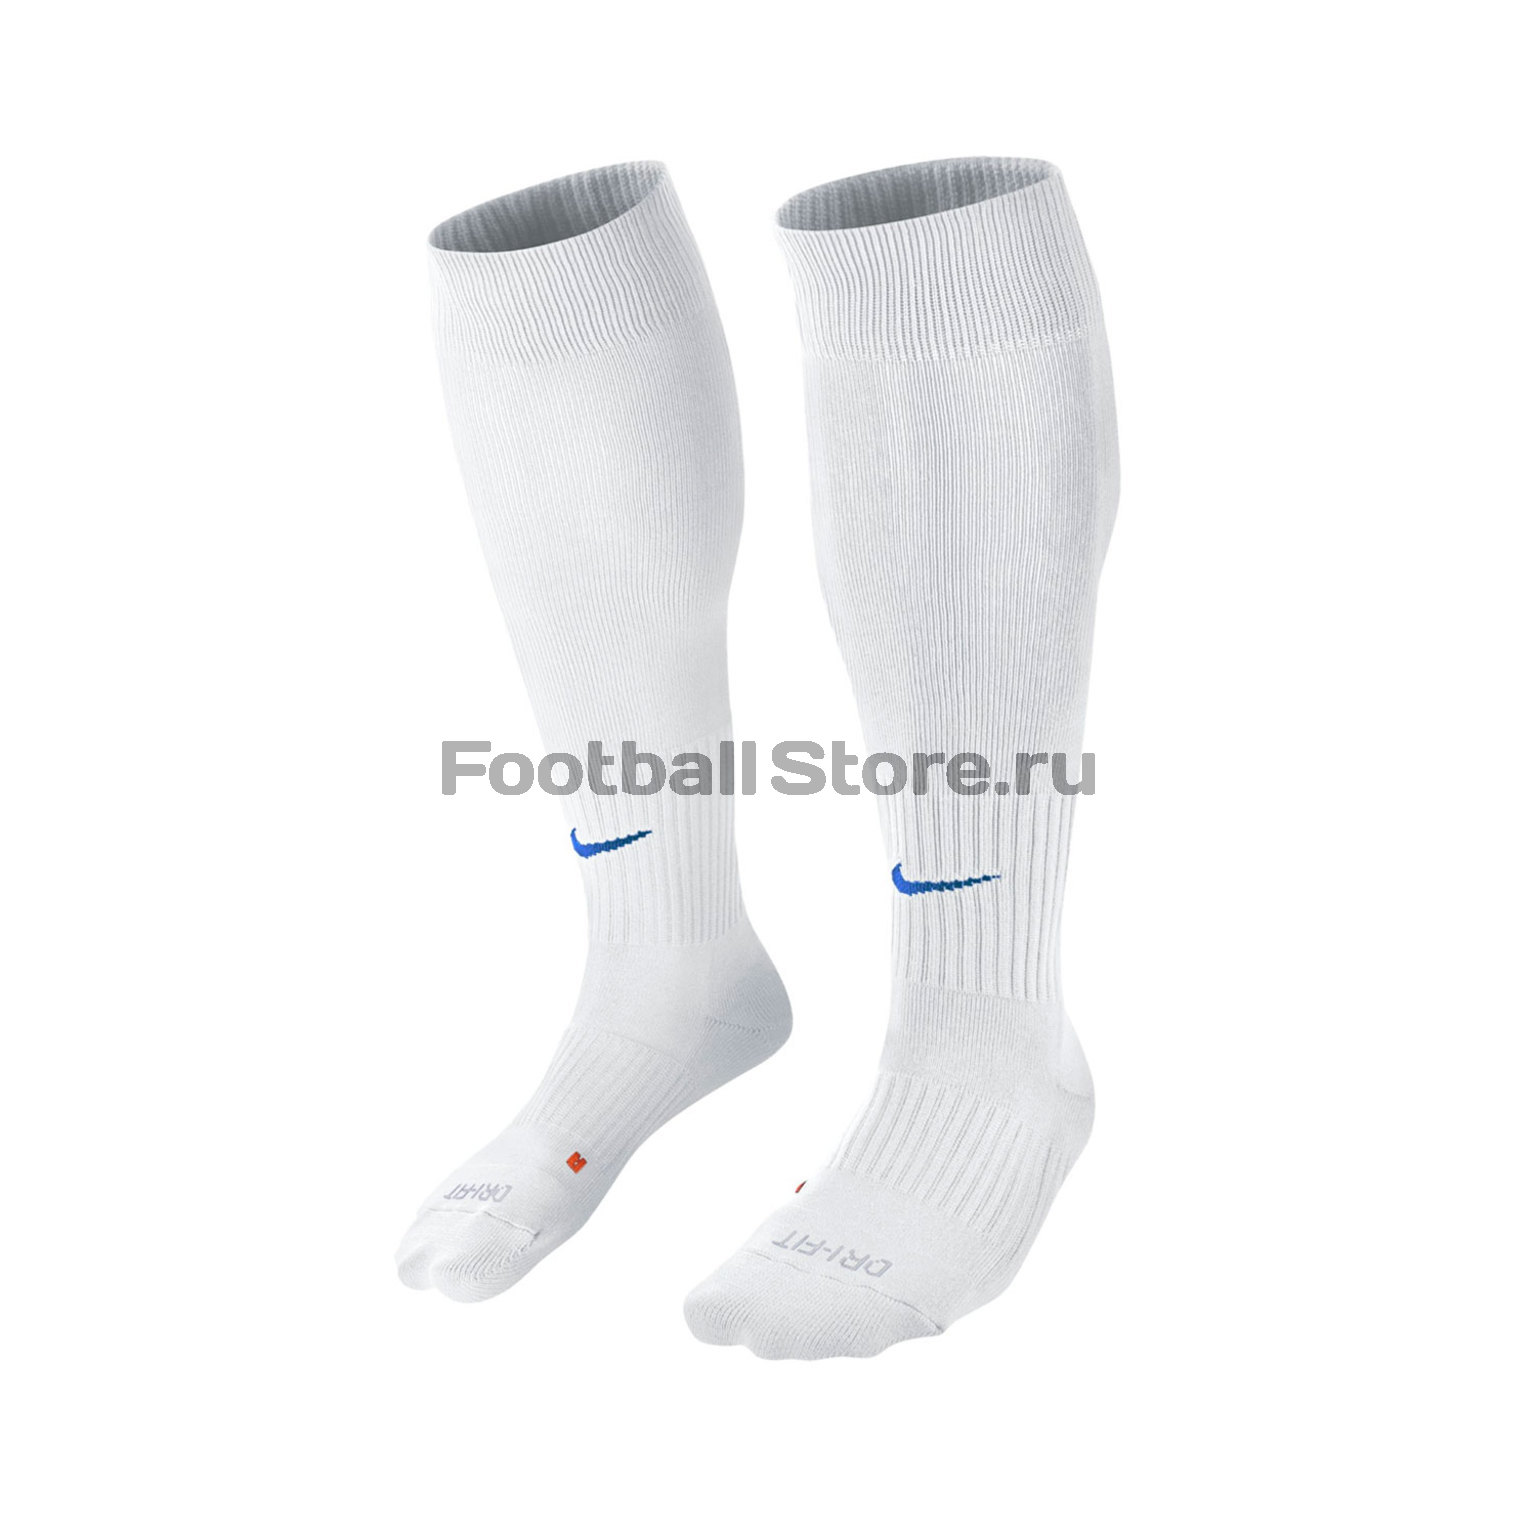 Гетры Nike U NK Classic II Cush OTC-Team SX5728-101 гетры nike гетры nike classic football dri fit sx4120 101